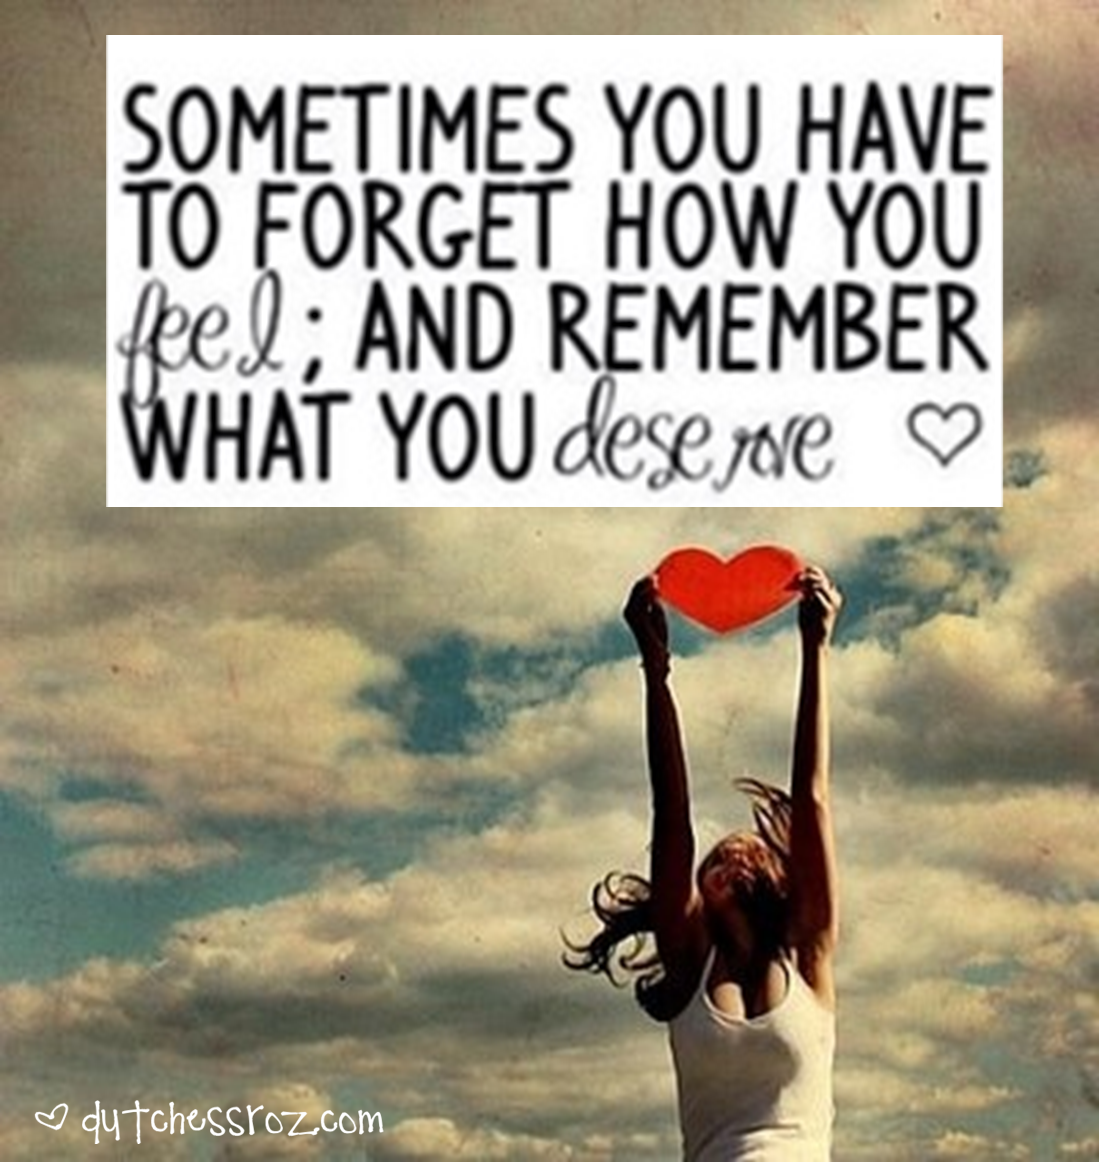 Remember what you deserve…>